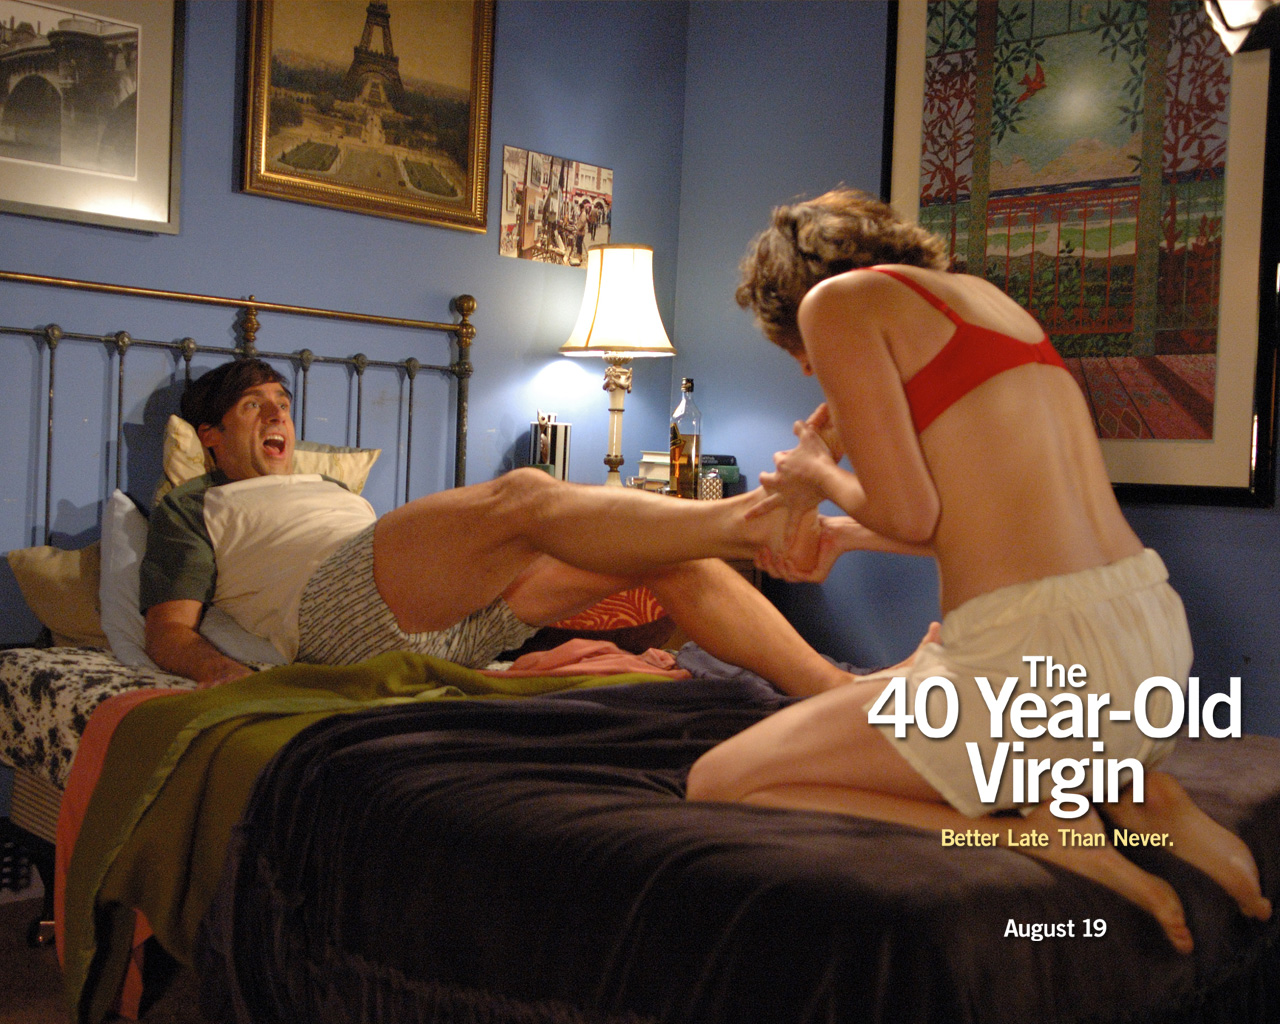 http://3.bp.blogspot.com/-QTgpaeSdIQE/T0tQ92QCm2I/AAAAAAAACKk/wVeZ5p0KJsI/s1600/2005_the_40_year-old_virgin_wallpaper_002.jpg